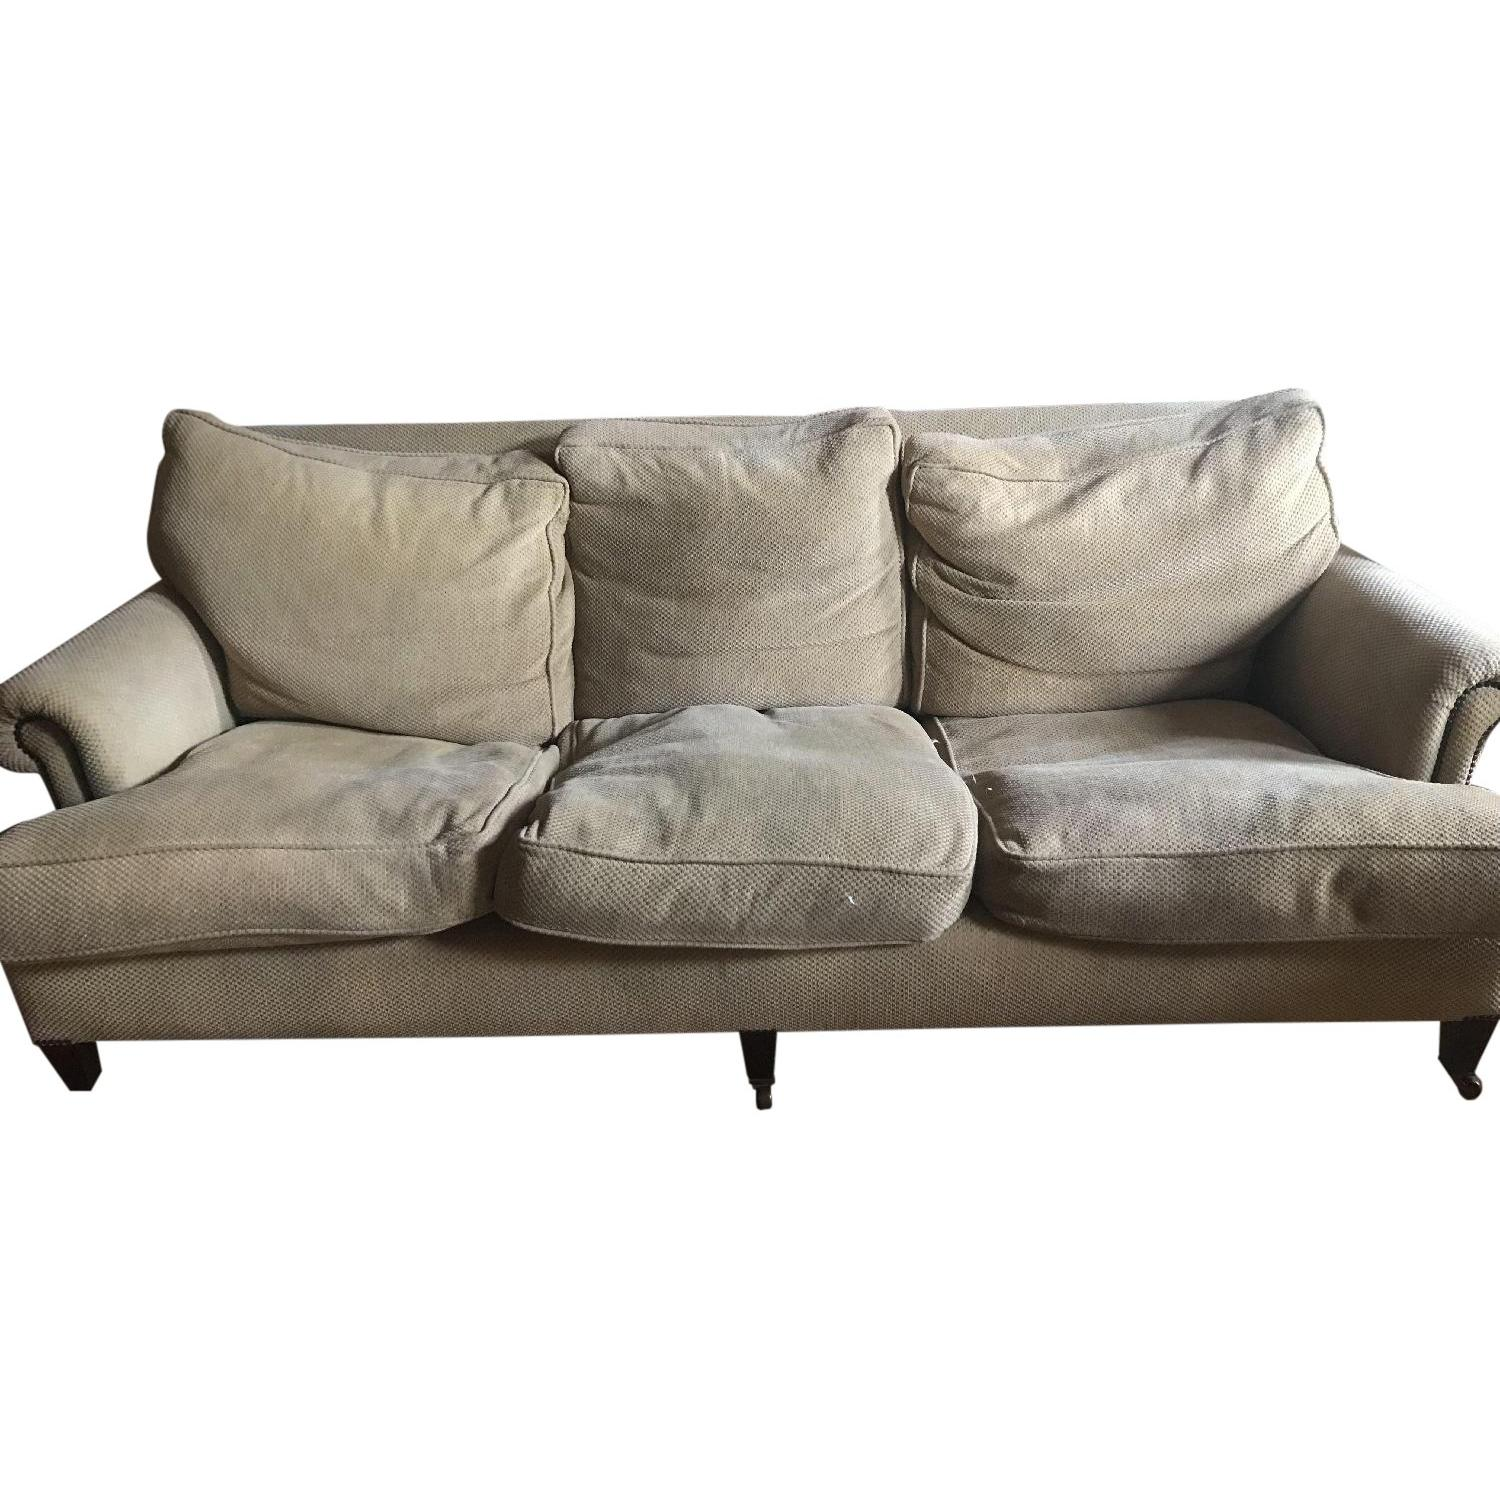 George Smith Studded Standard Arm 3 Seater Sofa ...